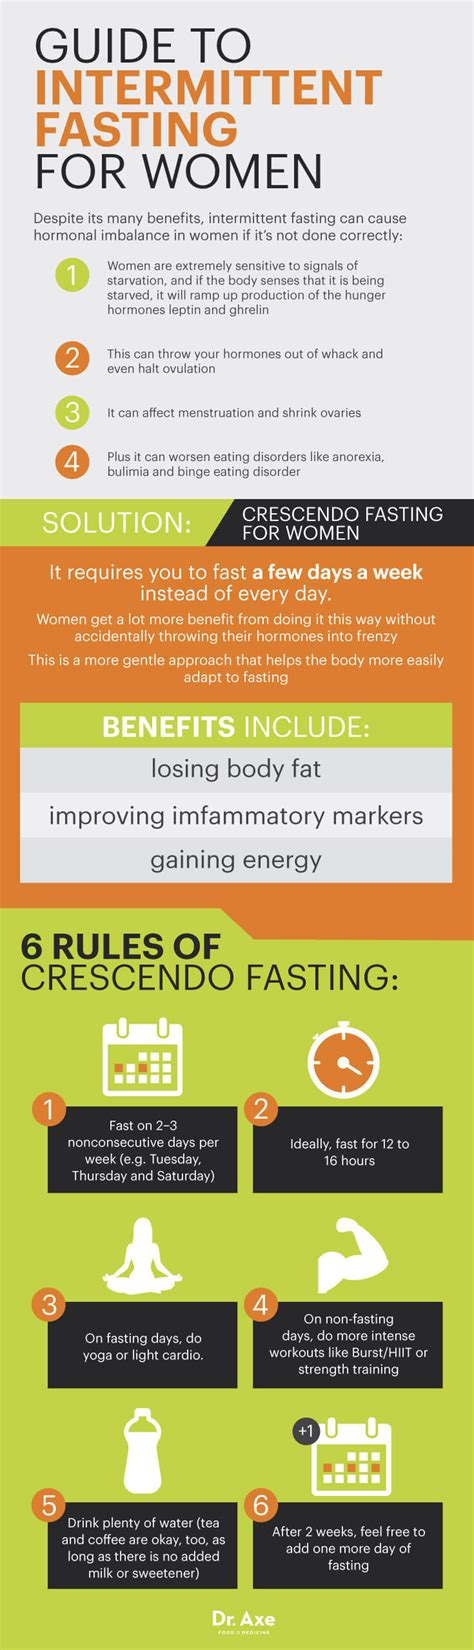 how to intermittent fasting the secret to intermittent fasting for dr axe